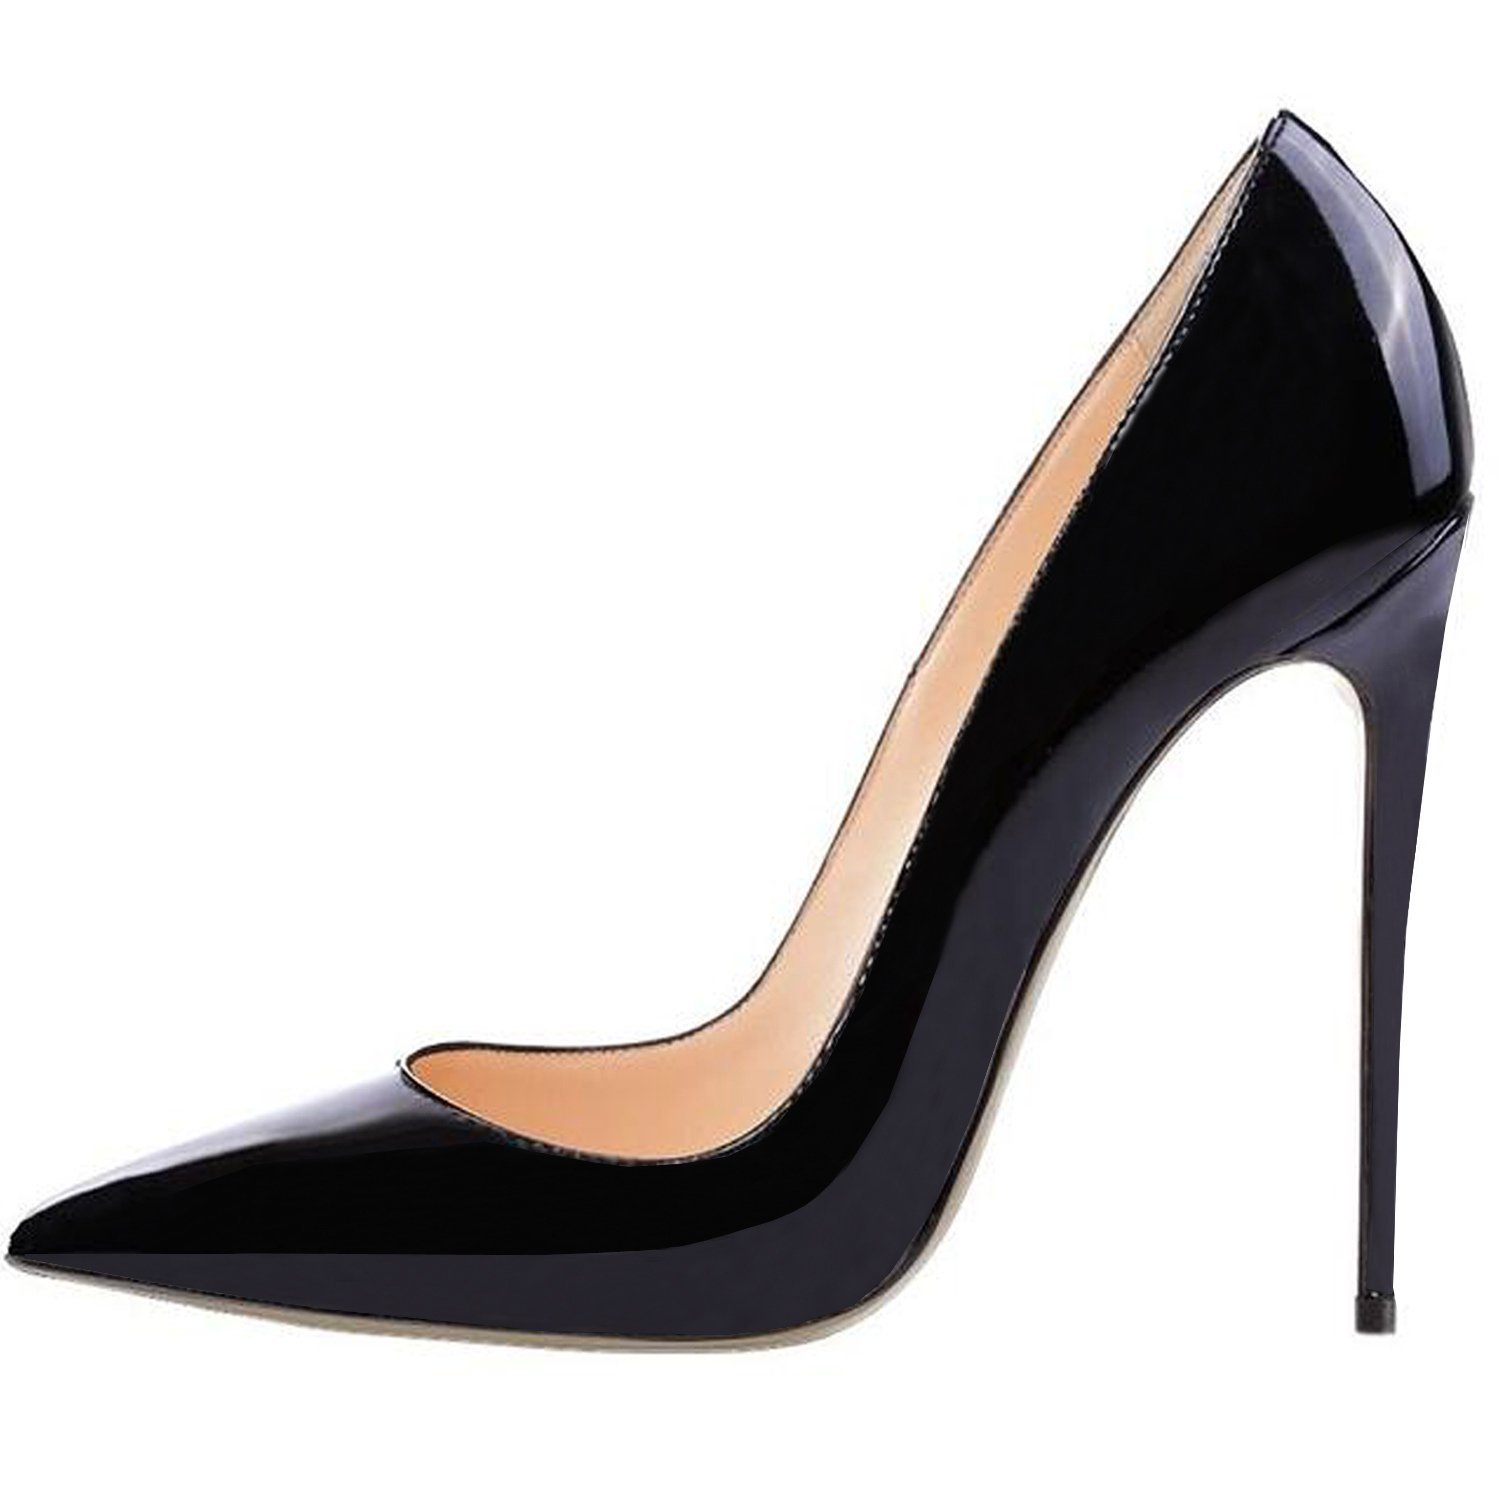 High Heels Pumps LsMs1yA3